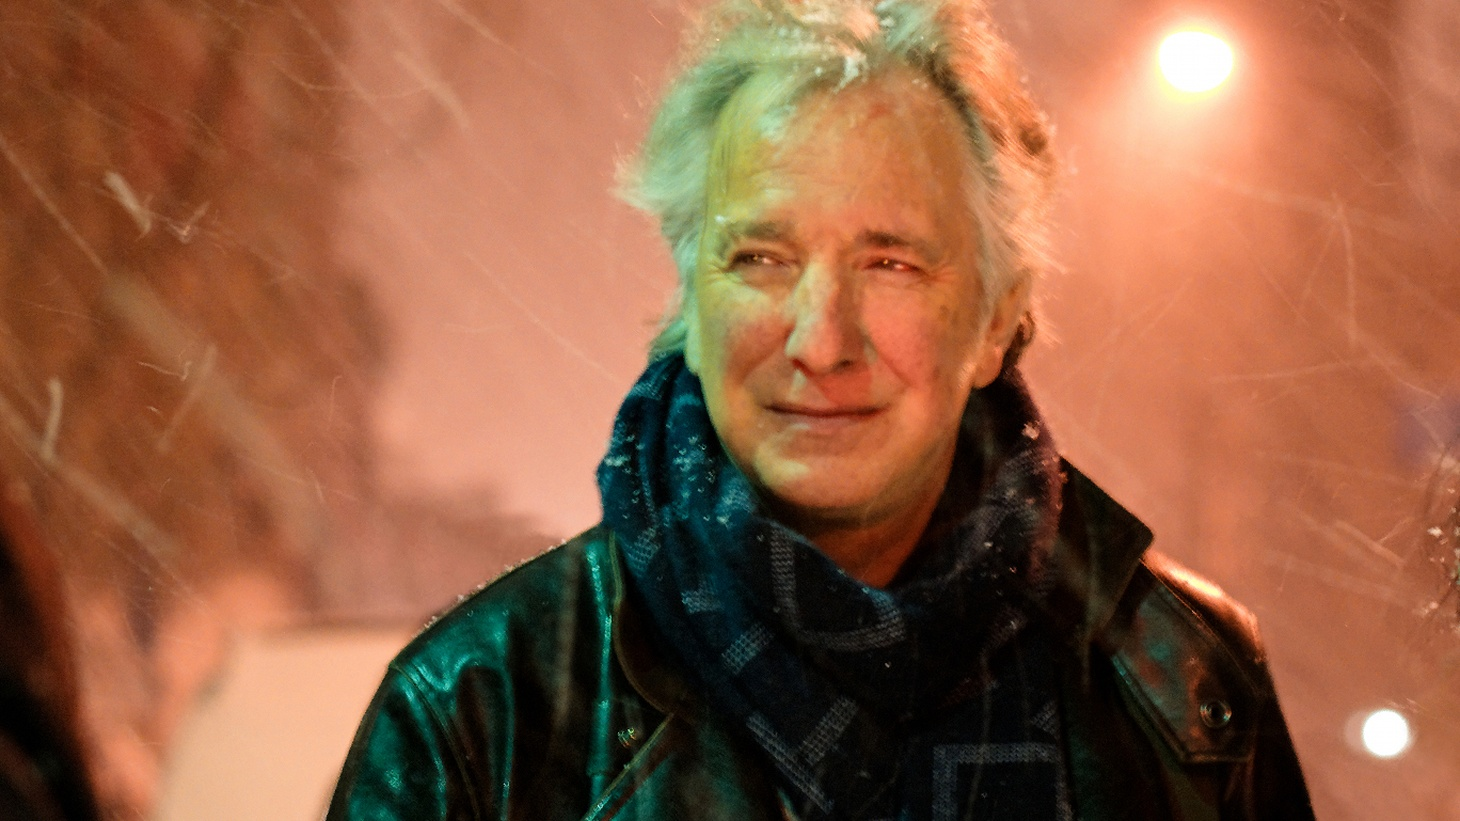 Joe Morgenstern remembers British actor Alan Rickman, who died this week at 69. His voice made him instantly recognizable; his iconic roles and acting prowess made him memorable.